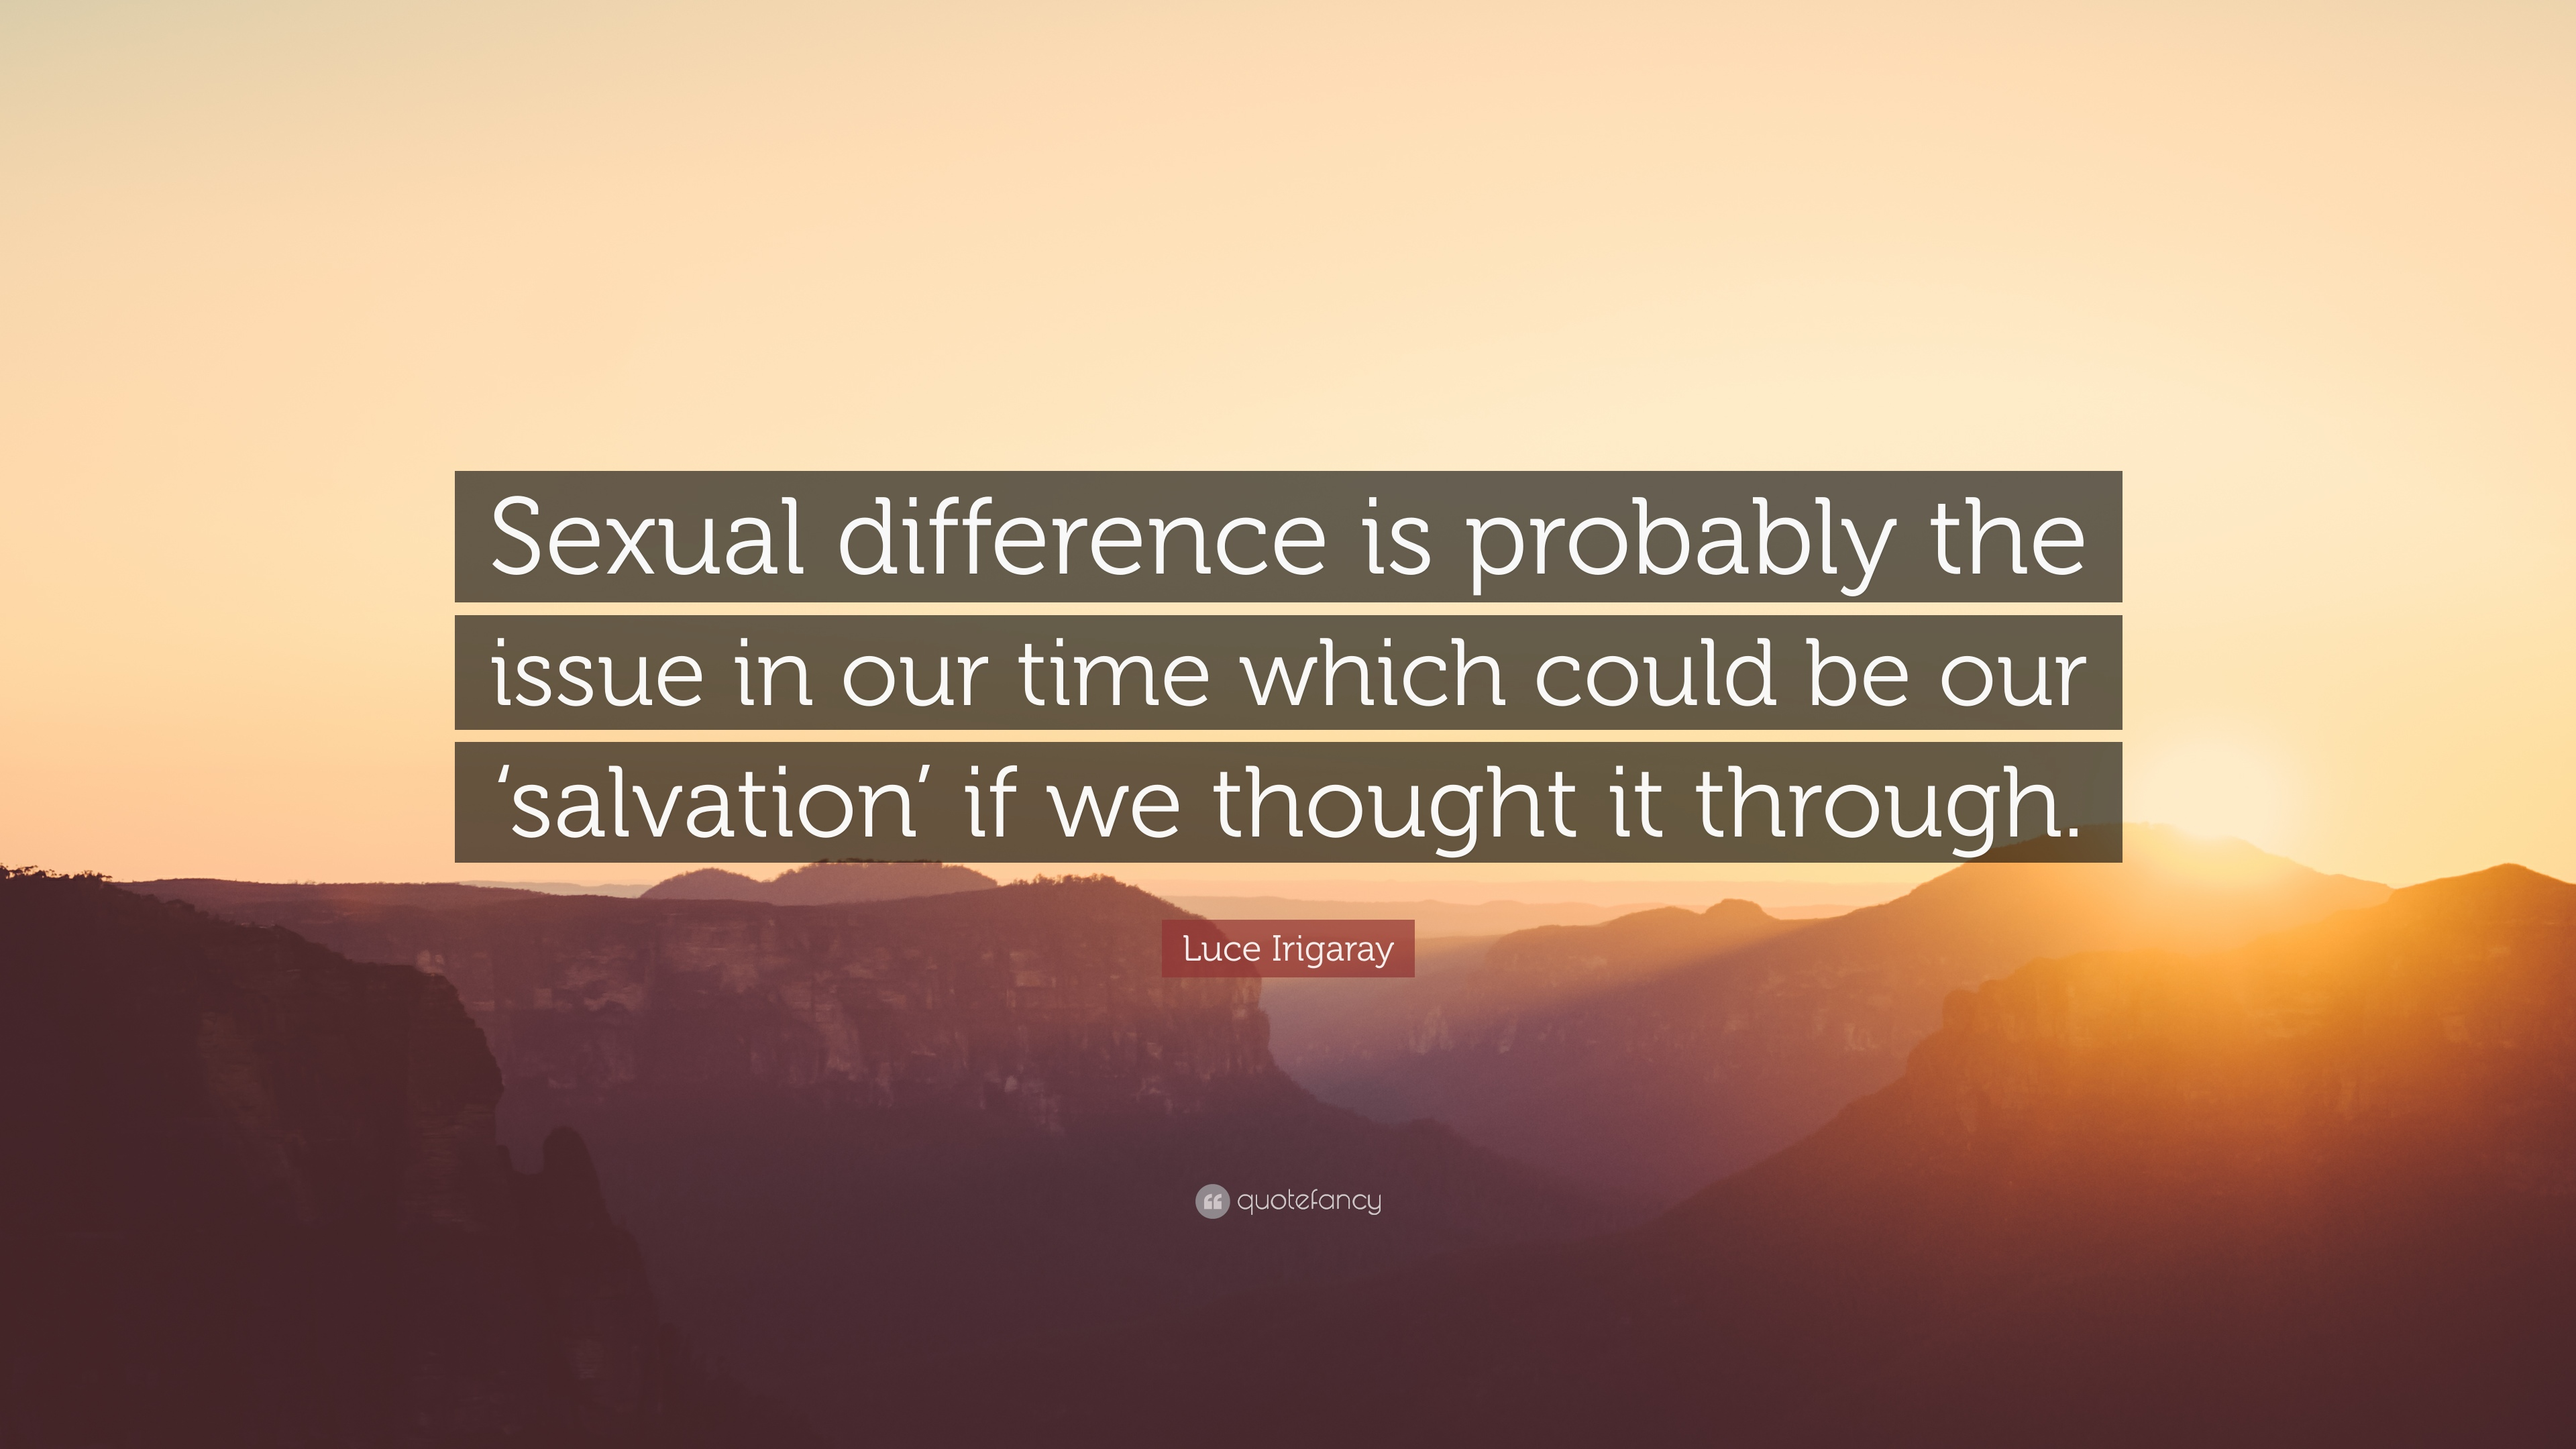 Sexual difference